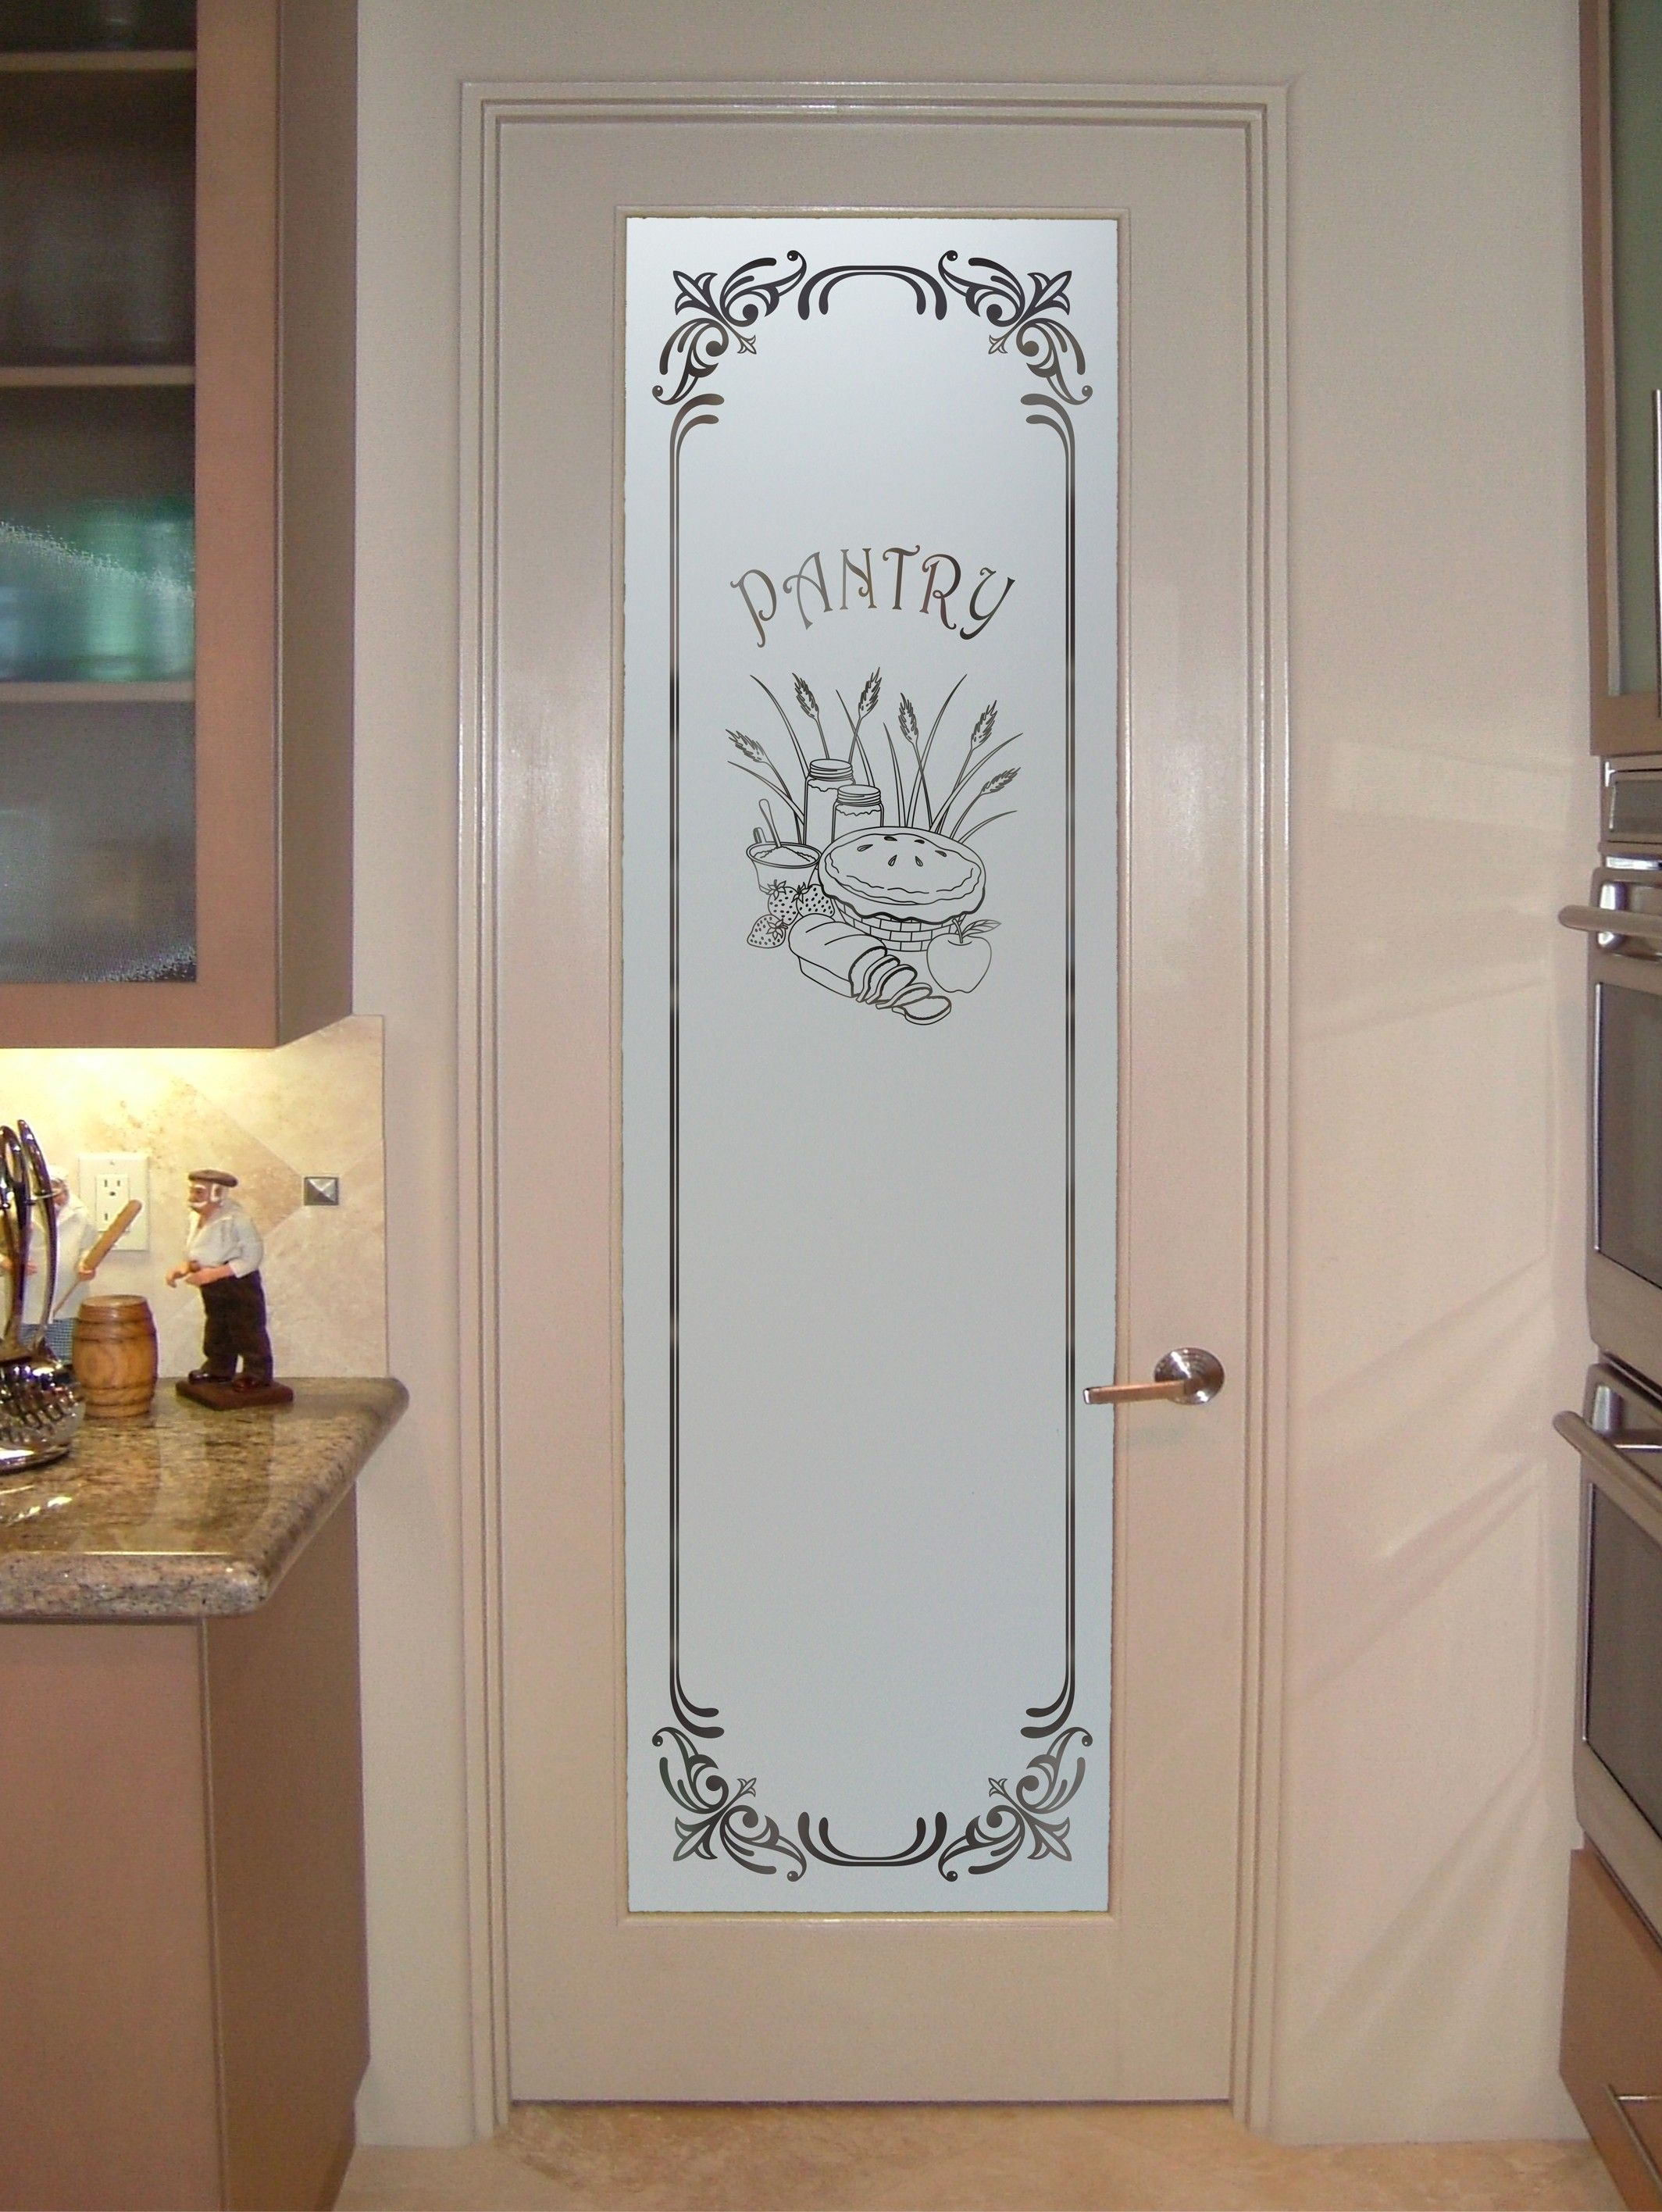 charter frosted glass removing ideas home the interior doors